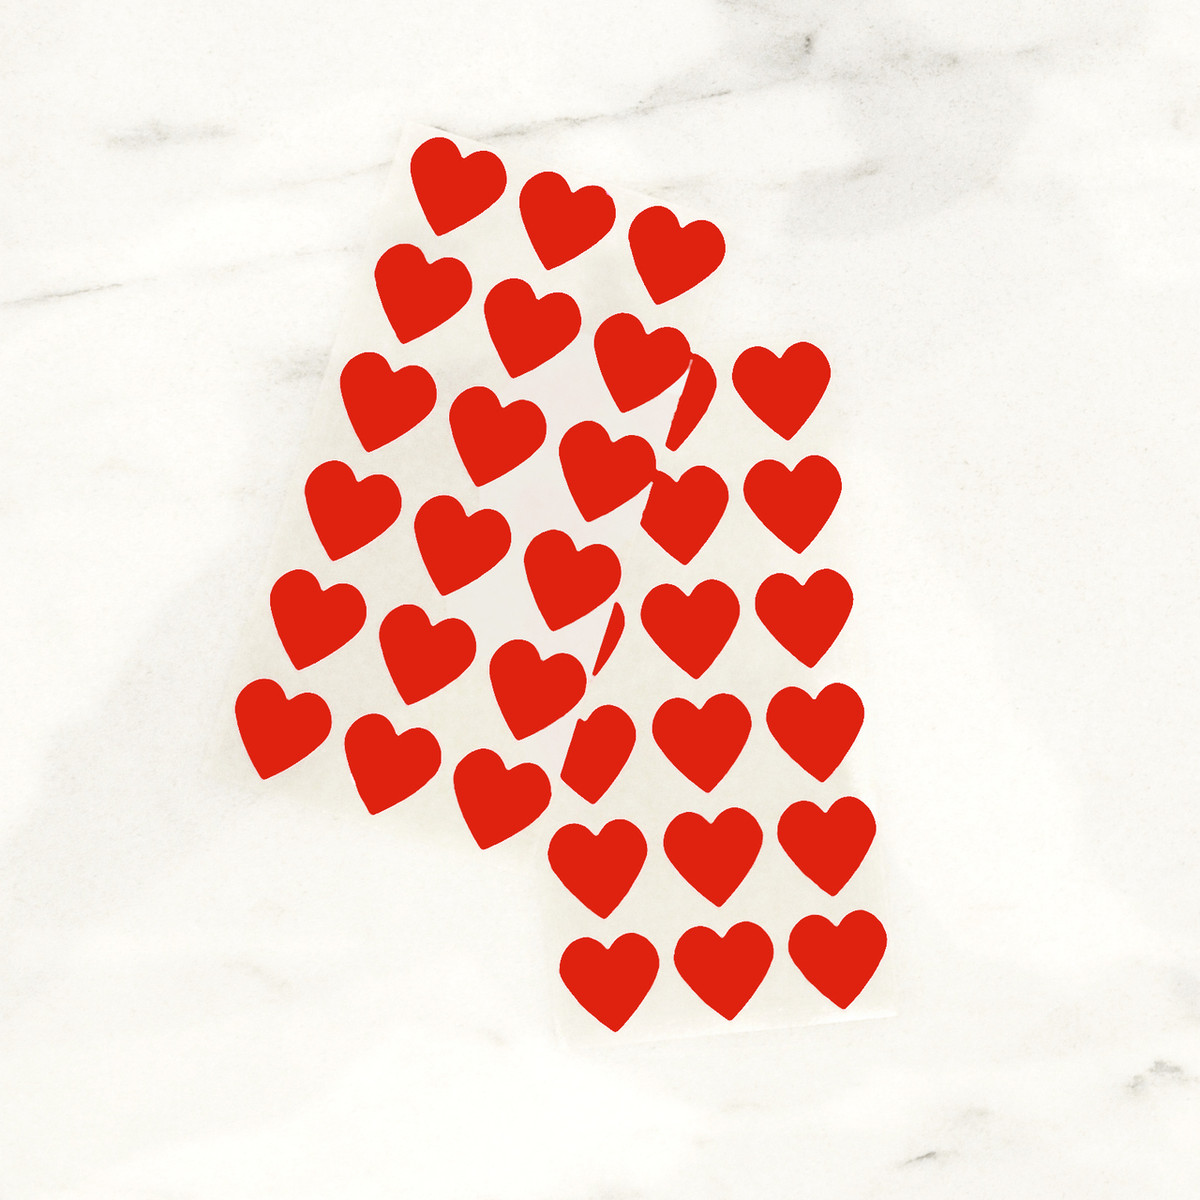 Heart Stickers for Gift Wrap, Invitations, Letters & Craft Projects